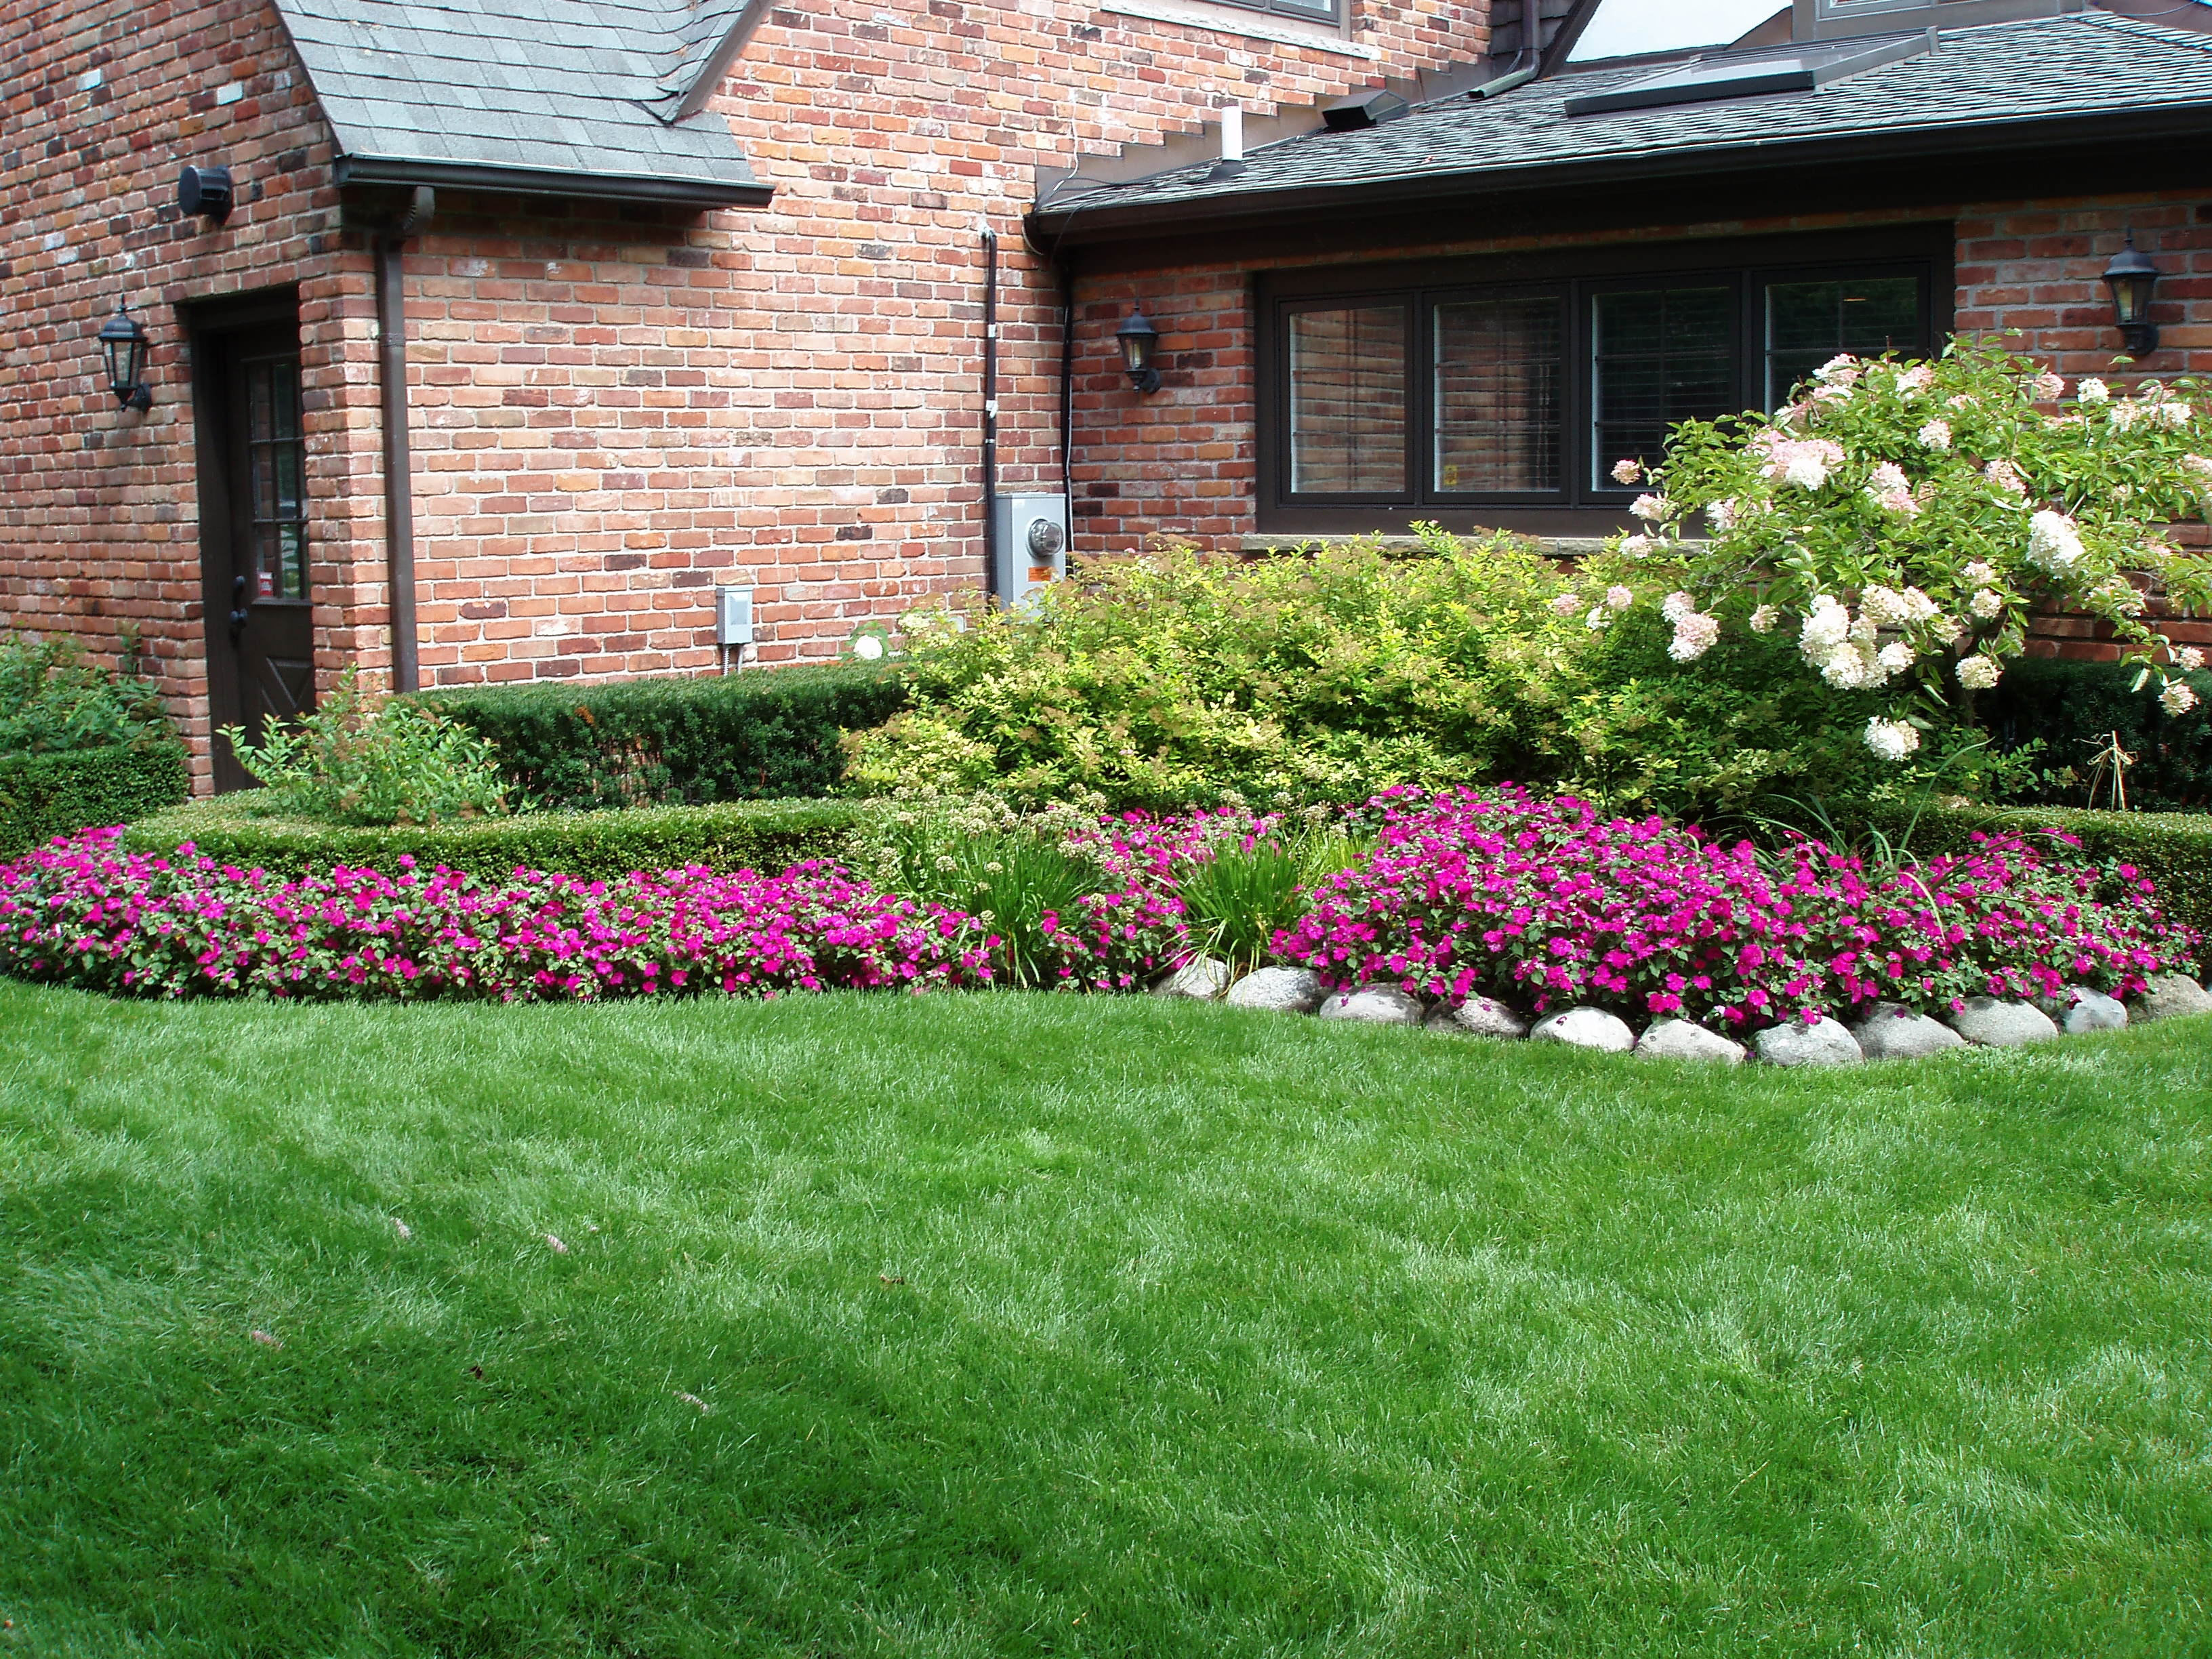 Perennials total lawn care inc full lawn maintenance Pictures of landscaping ideas